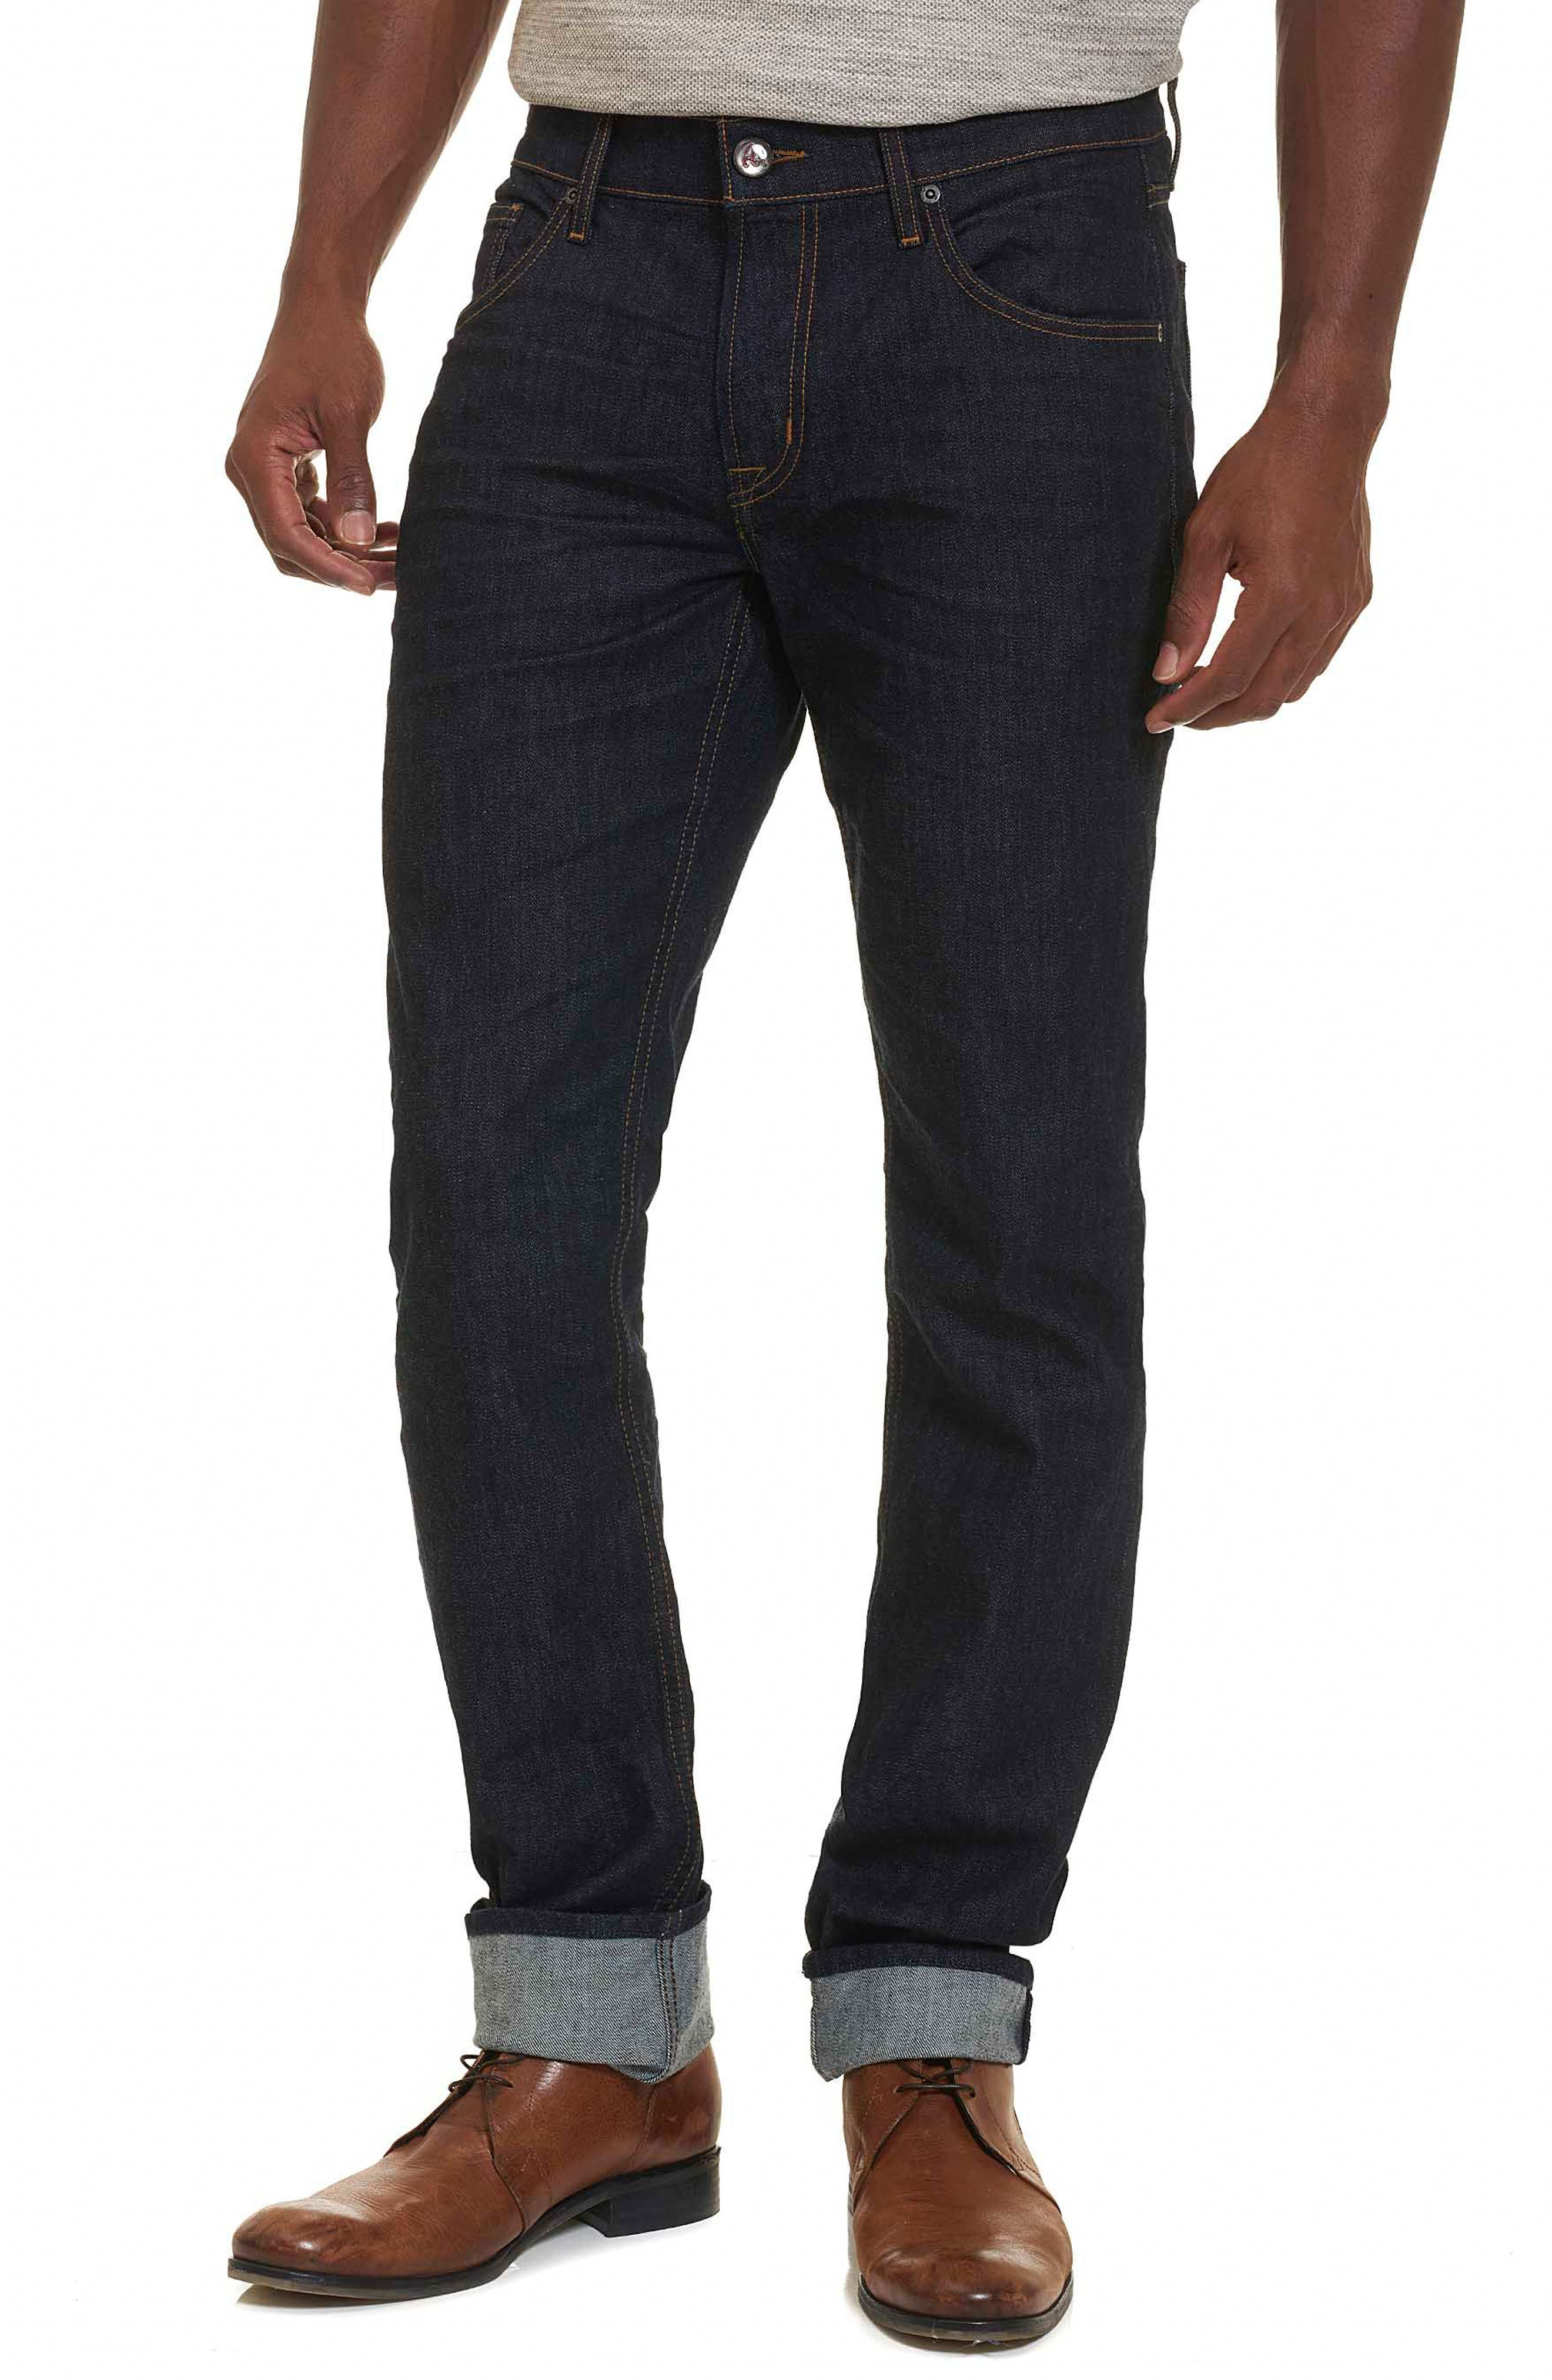 Resist Tailored Fit Jeans,                         Main,                         color, Indigo